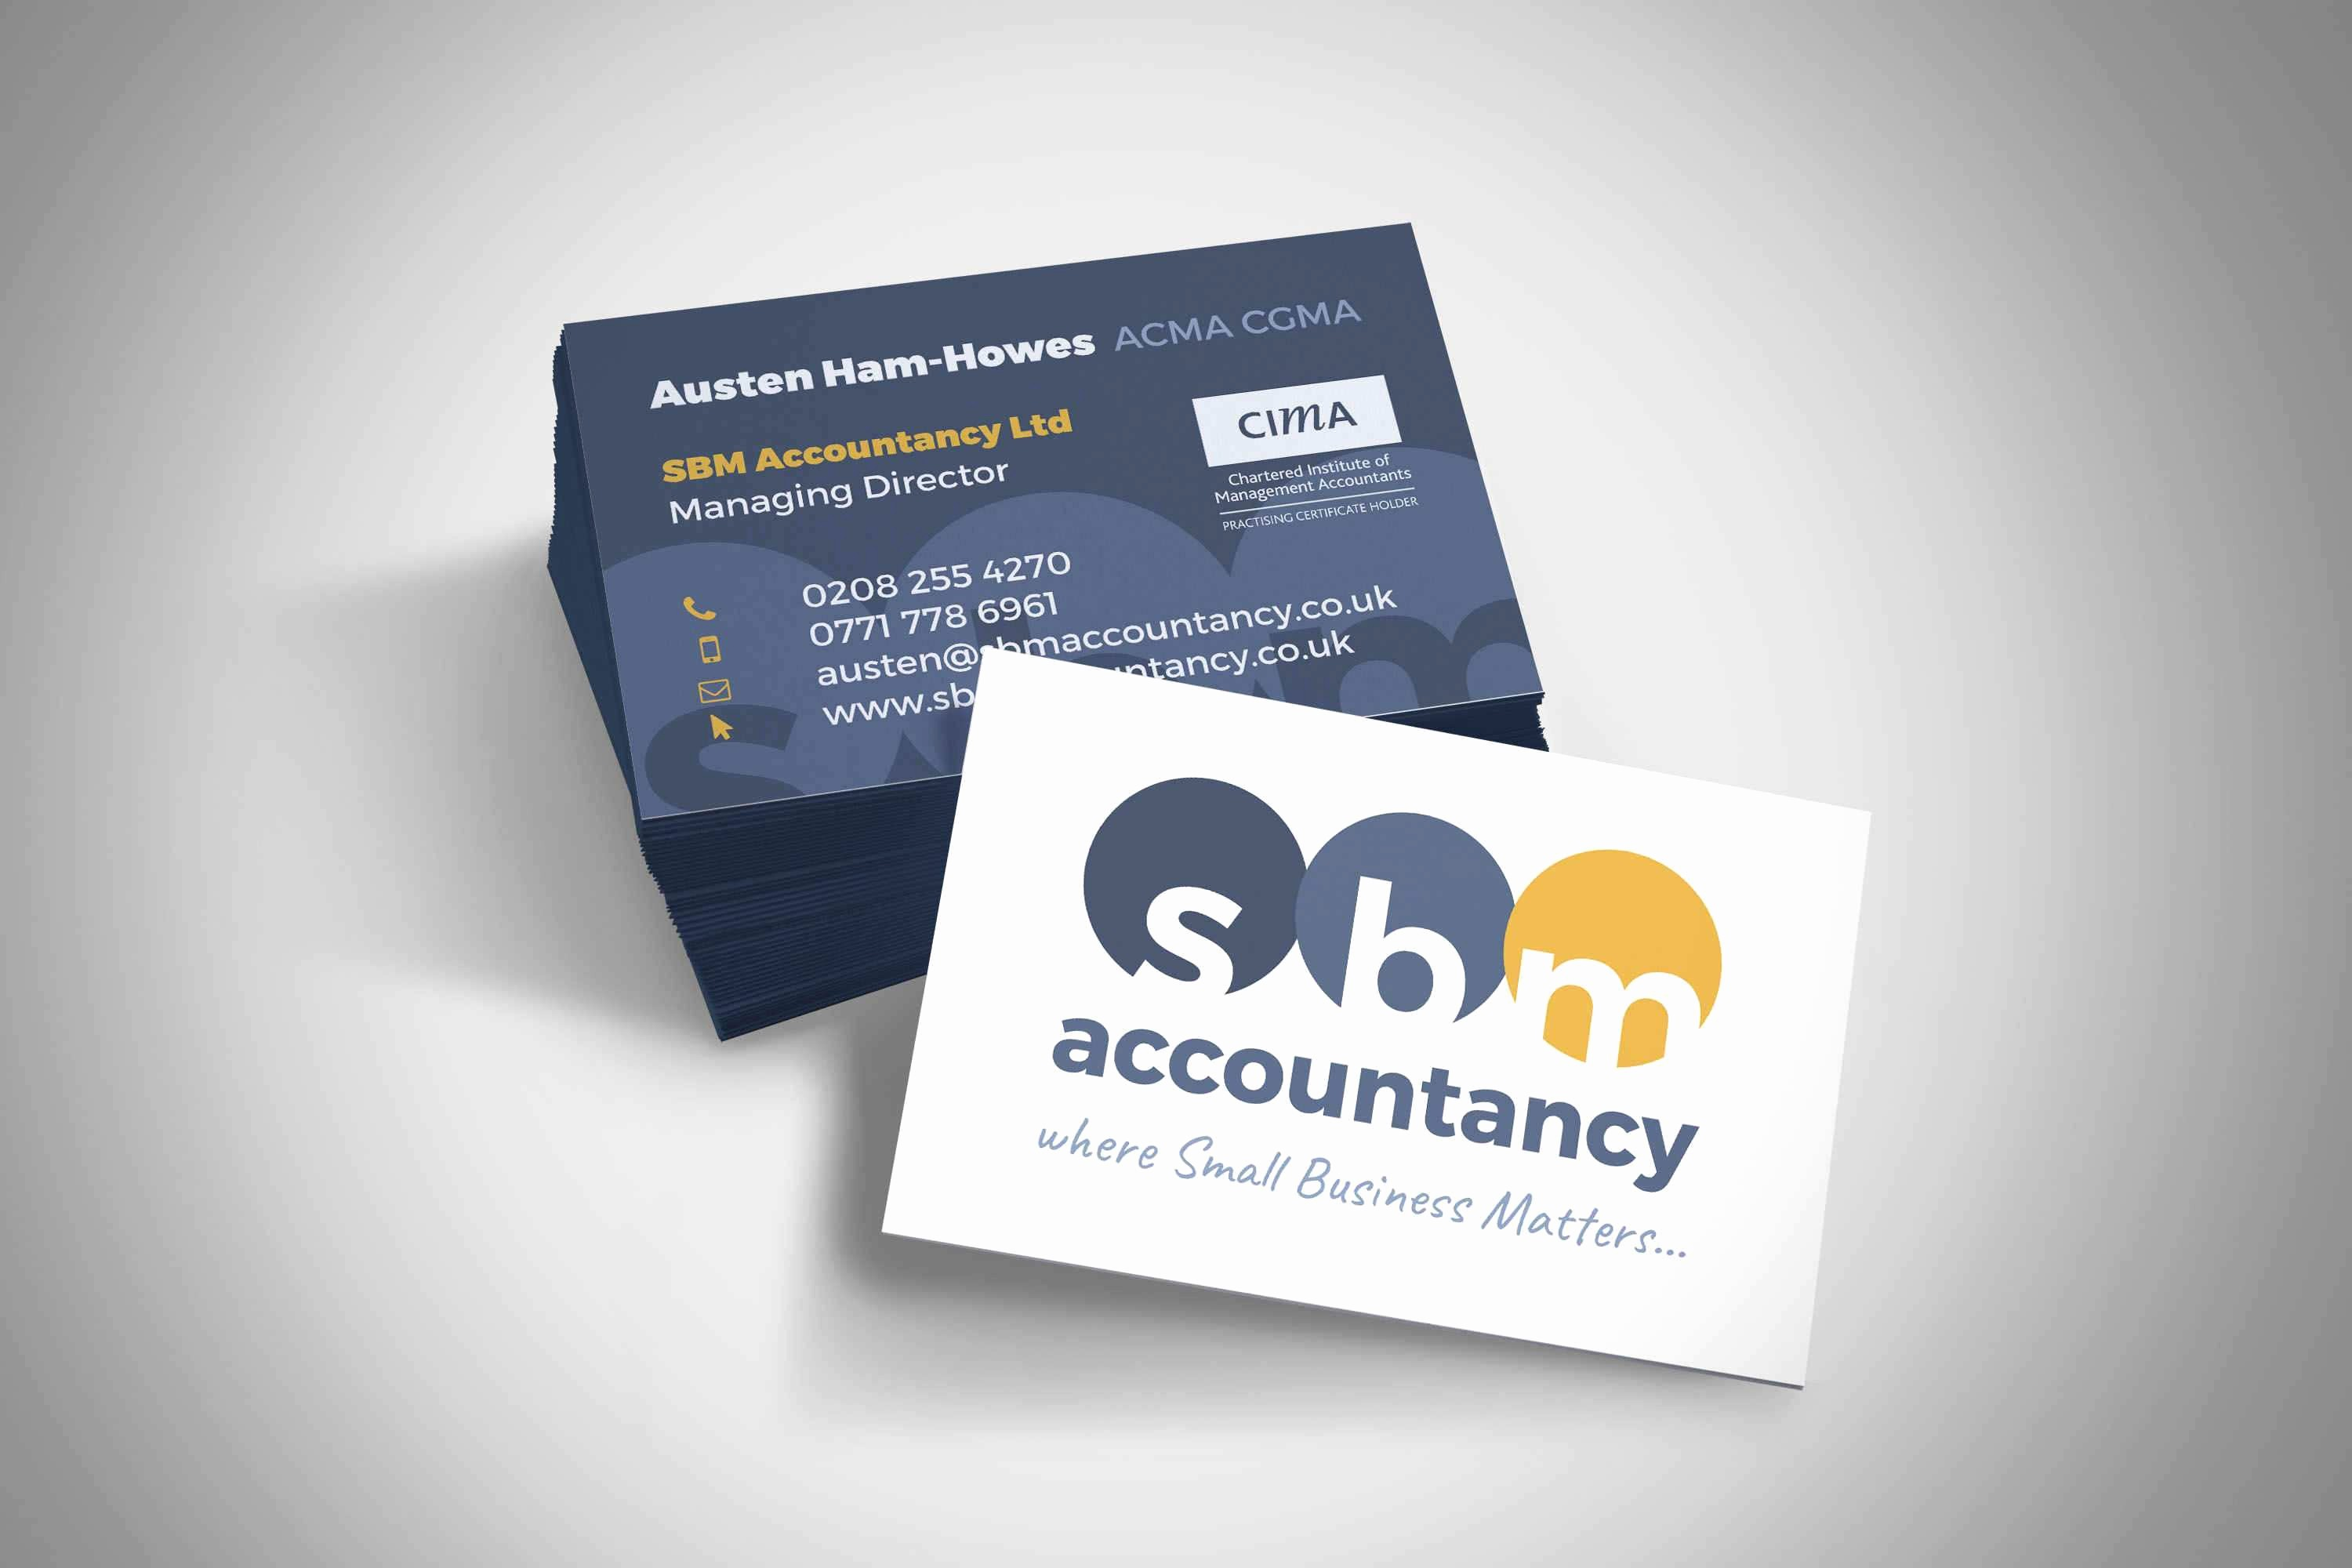 Microsoft Business Card Templates Free Best Of Microsoft Business Cards Templates Free Download Awesome